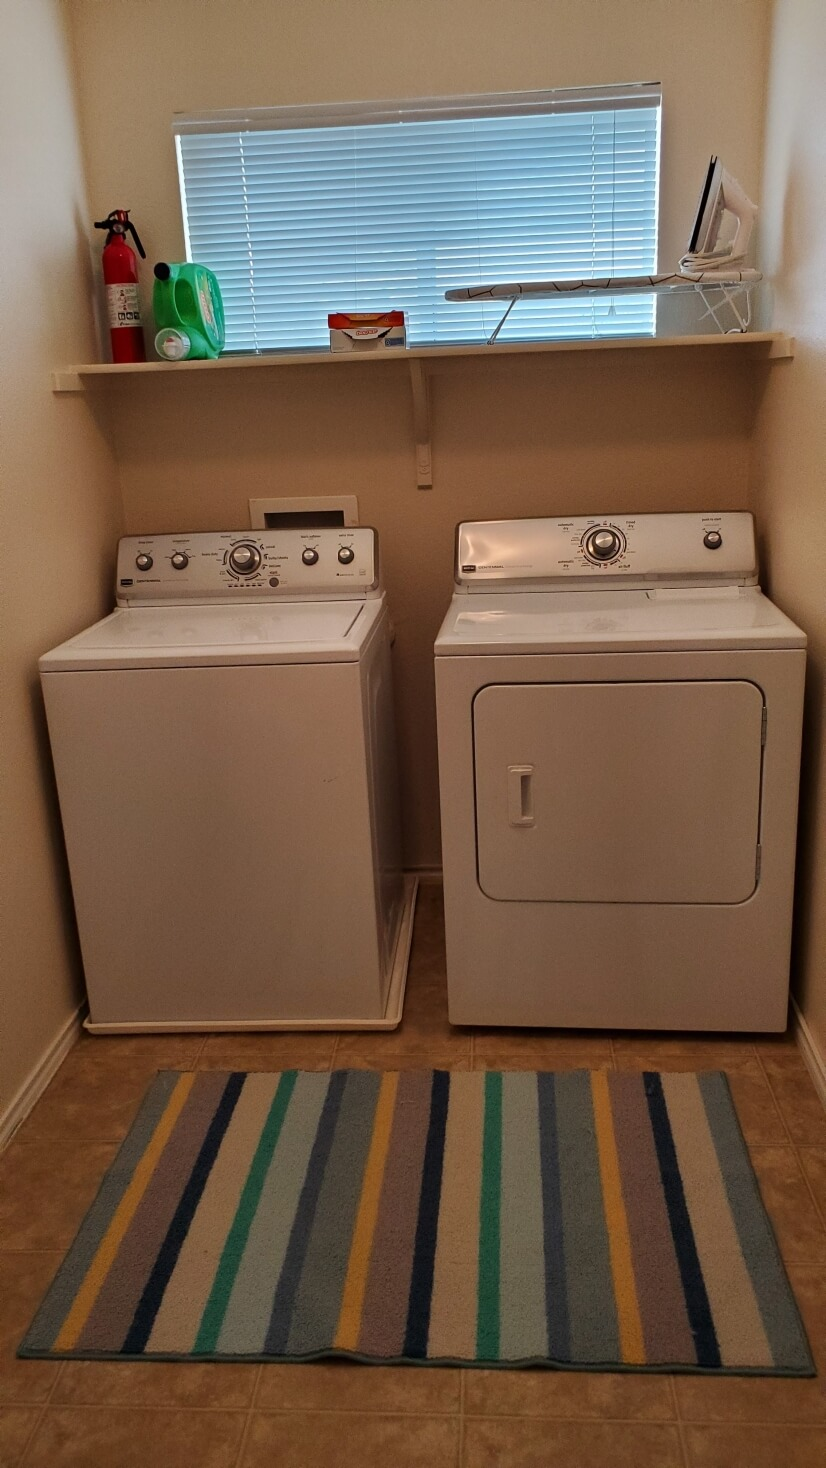 Upstairs laundry room with full-sized washer and dryer